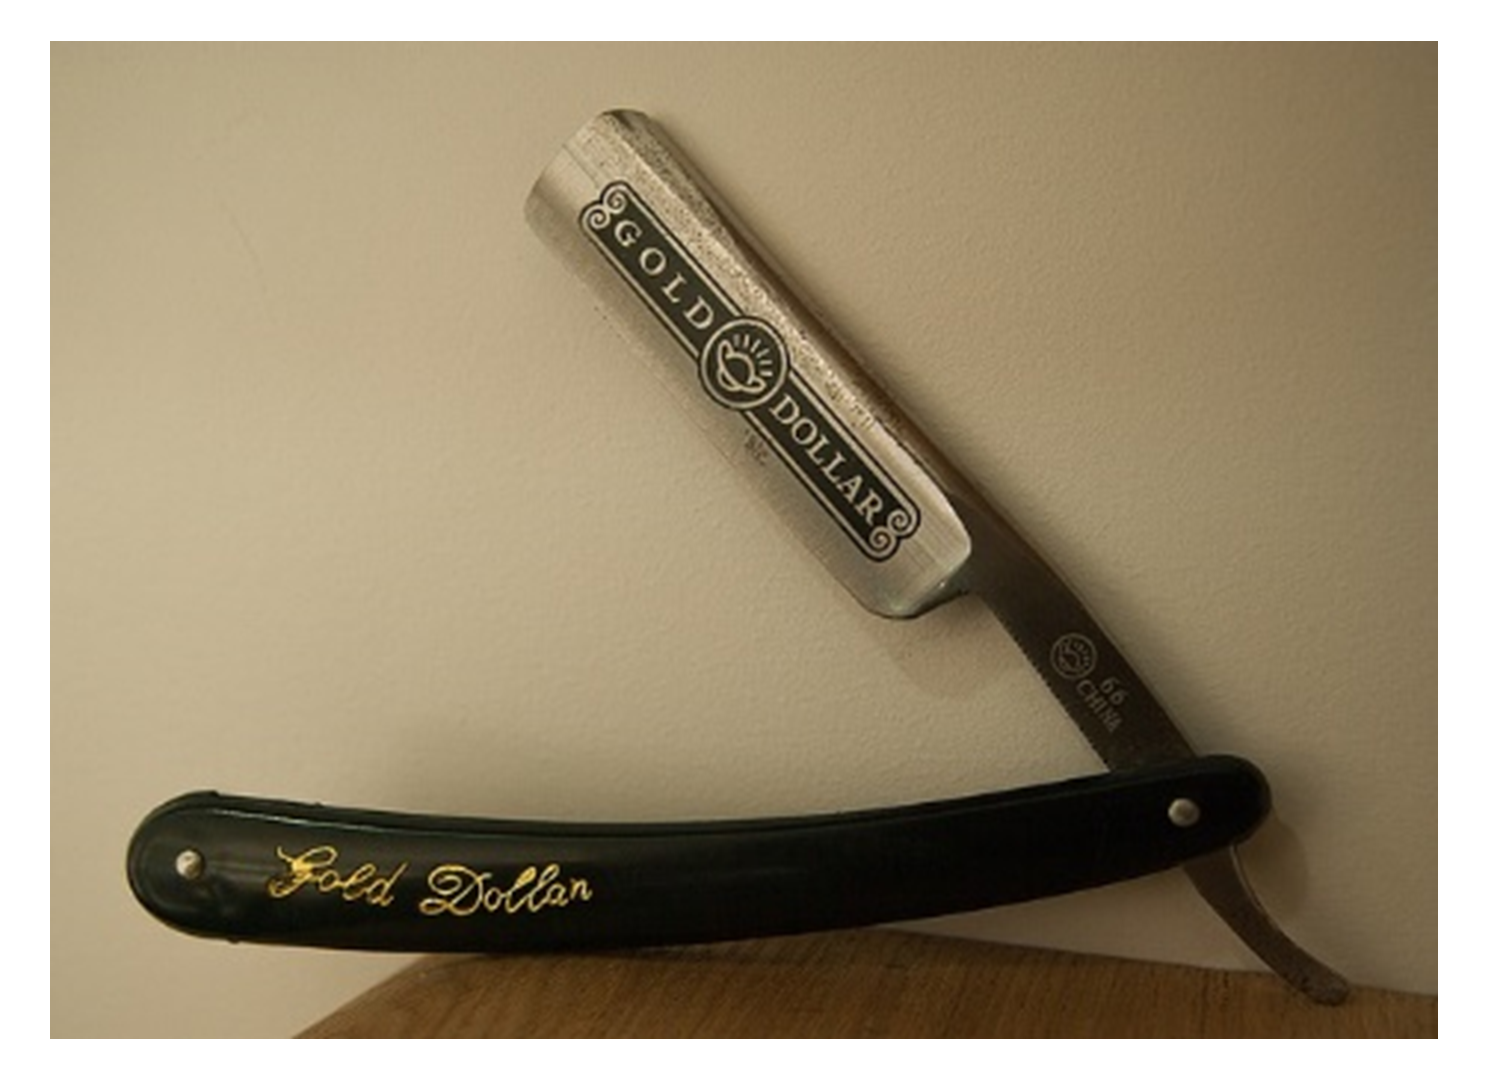 The shaving job with a straight razor is clearly more durable than it is with its competitors. With only a quick sharpening from time to time that allows for the razor to retain its cutting-edge quality, it is only one reliable and effective blade that can help you to act to protect the environment and save money.